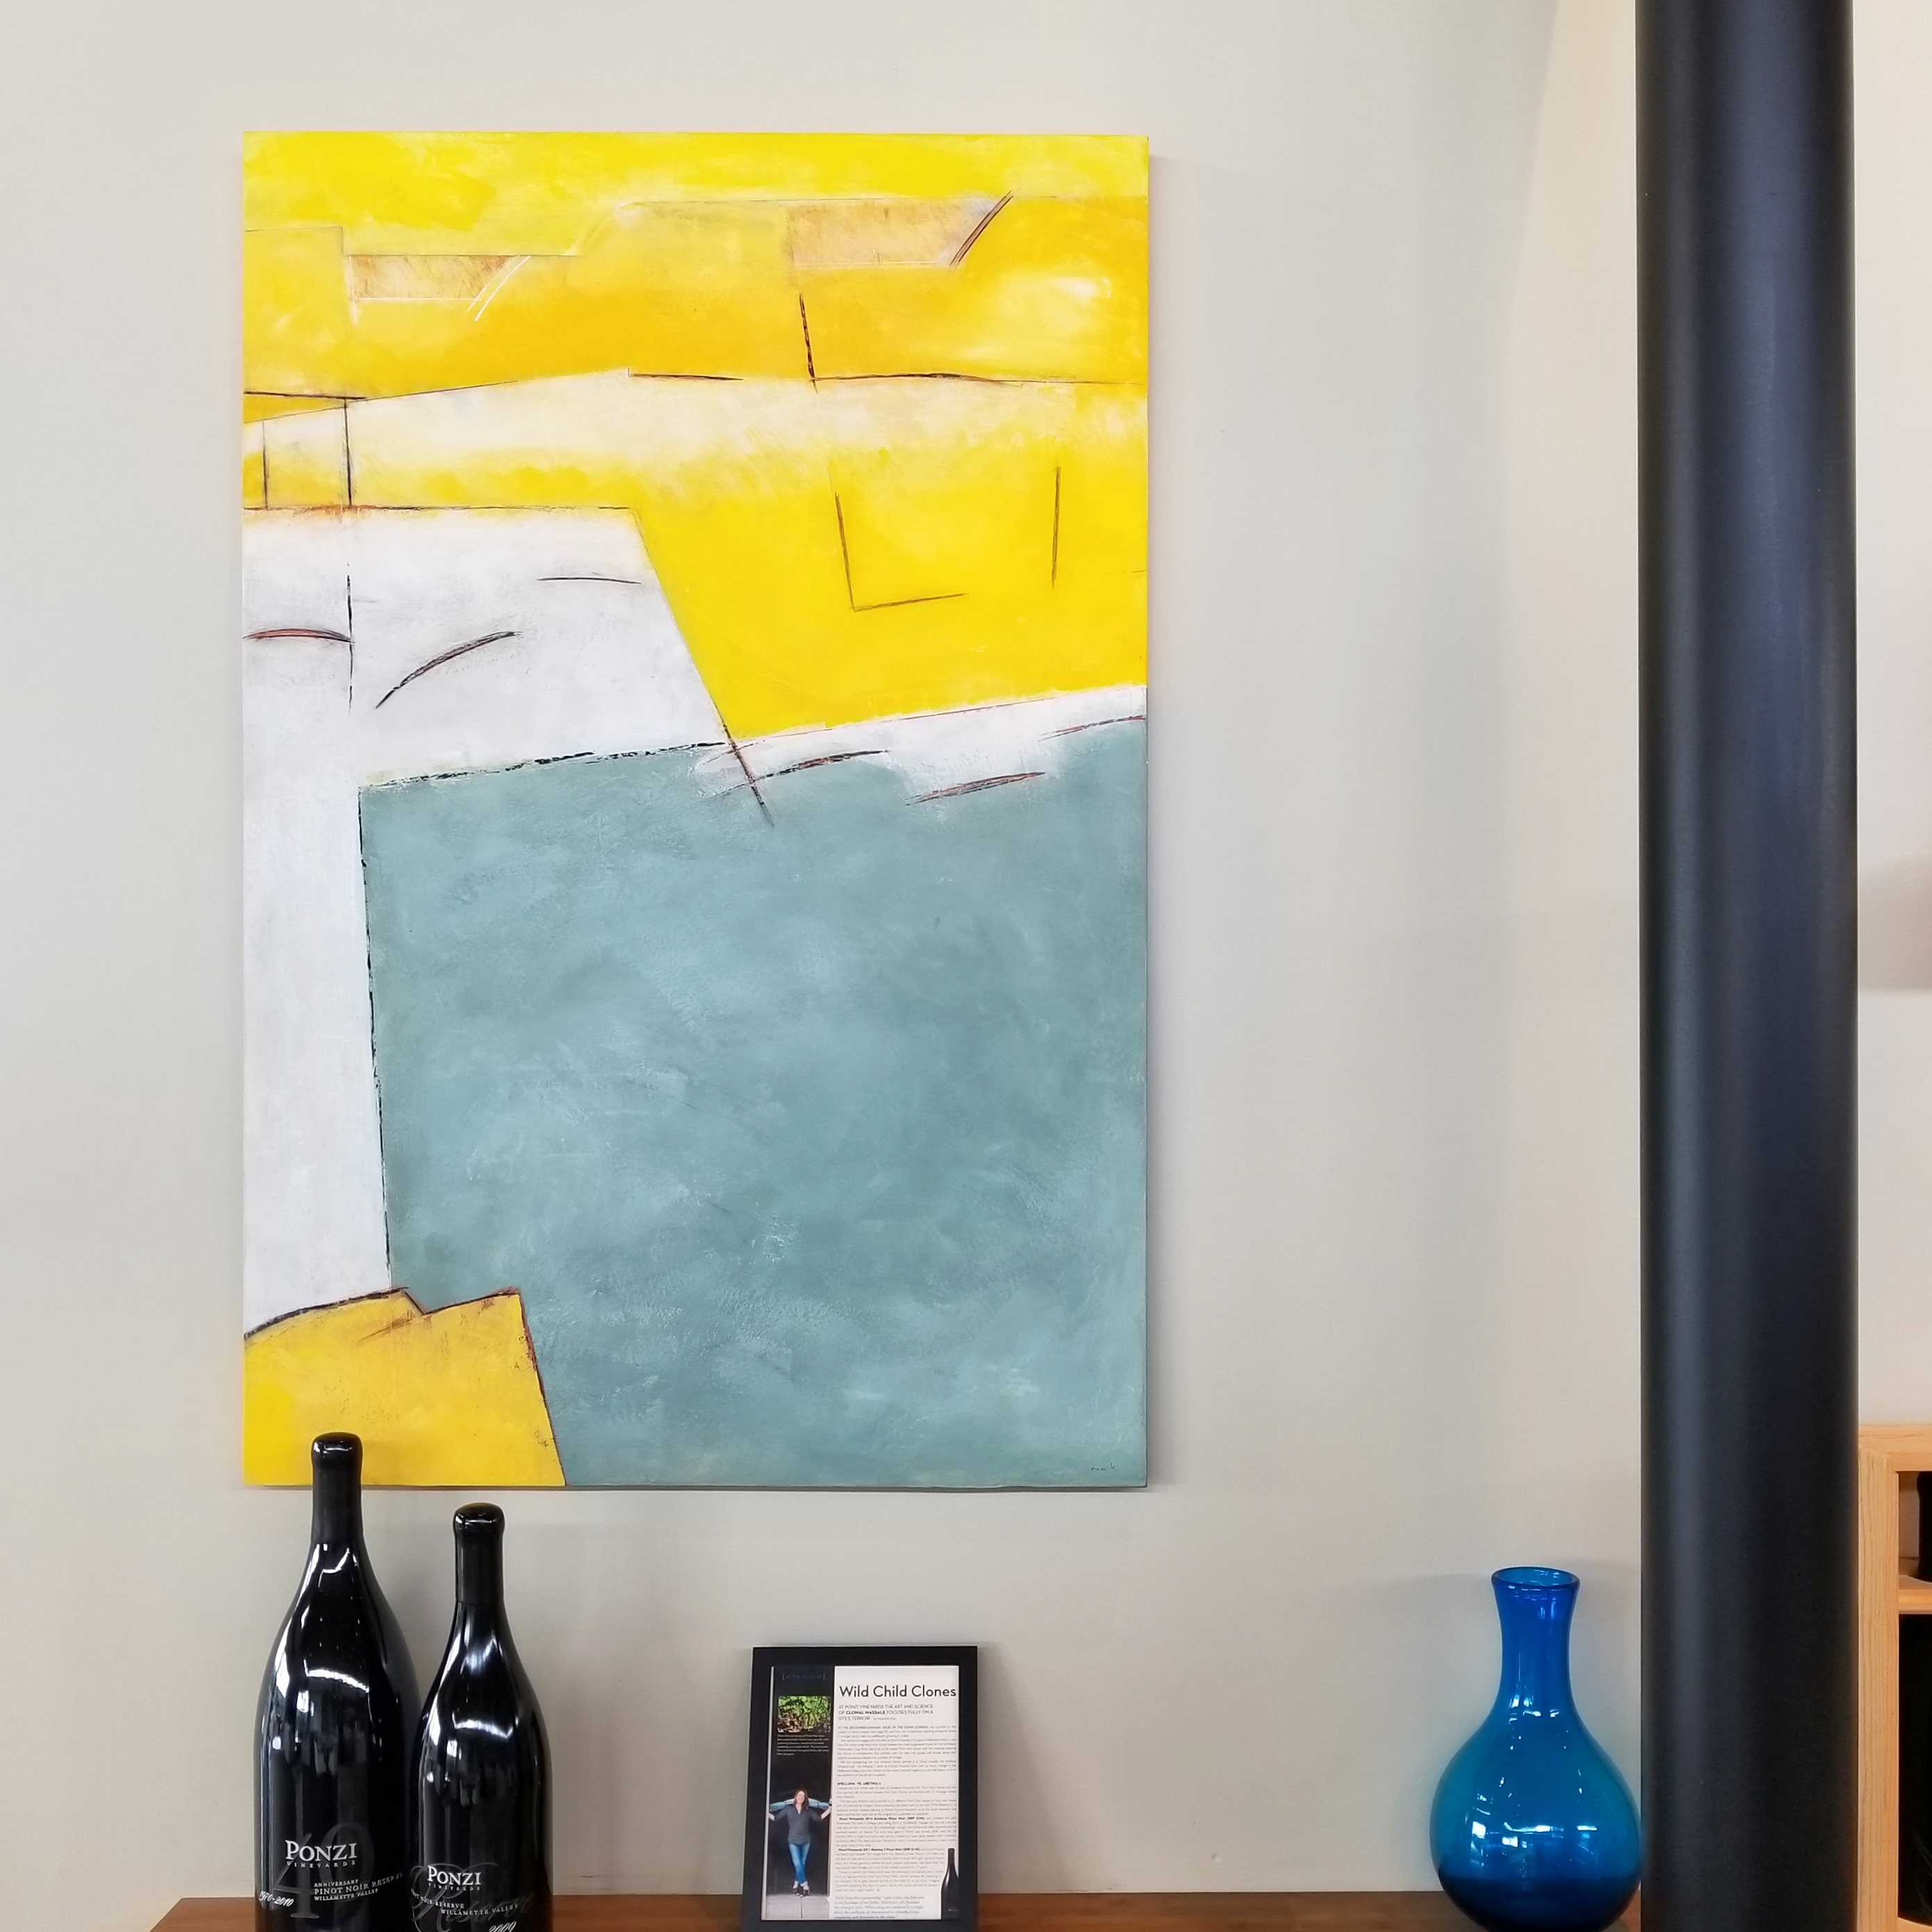 painting in the Ponzi Vineyards tasting room